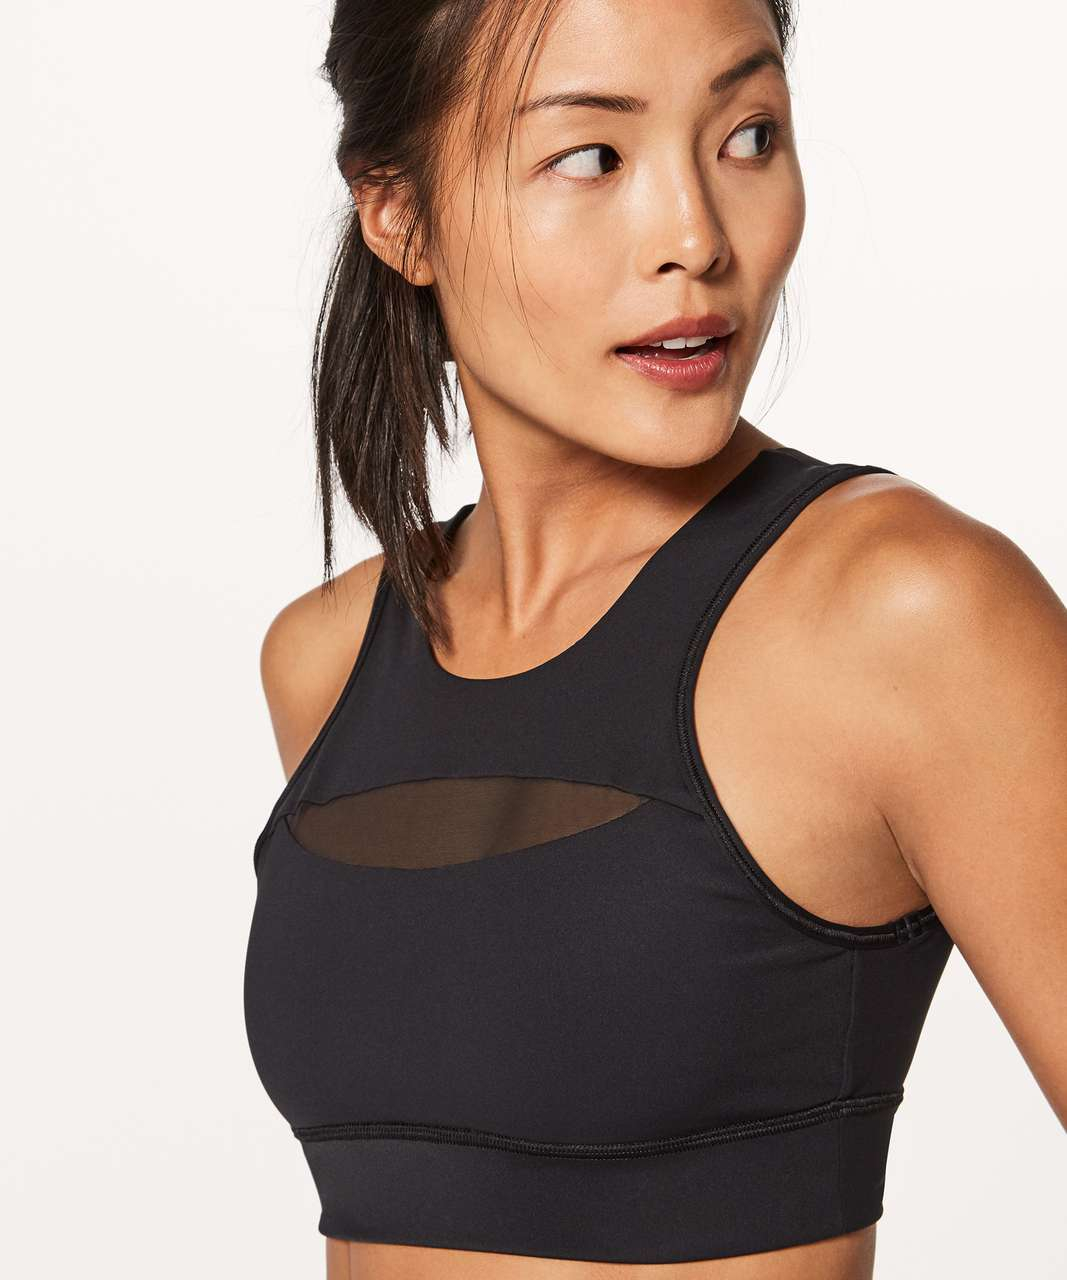 5e6e1a2a0a Lululemon Run The Day Bra - Black - lulu fanatics